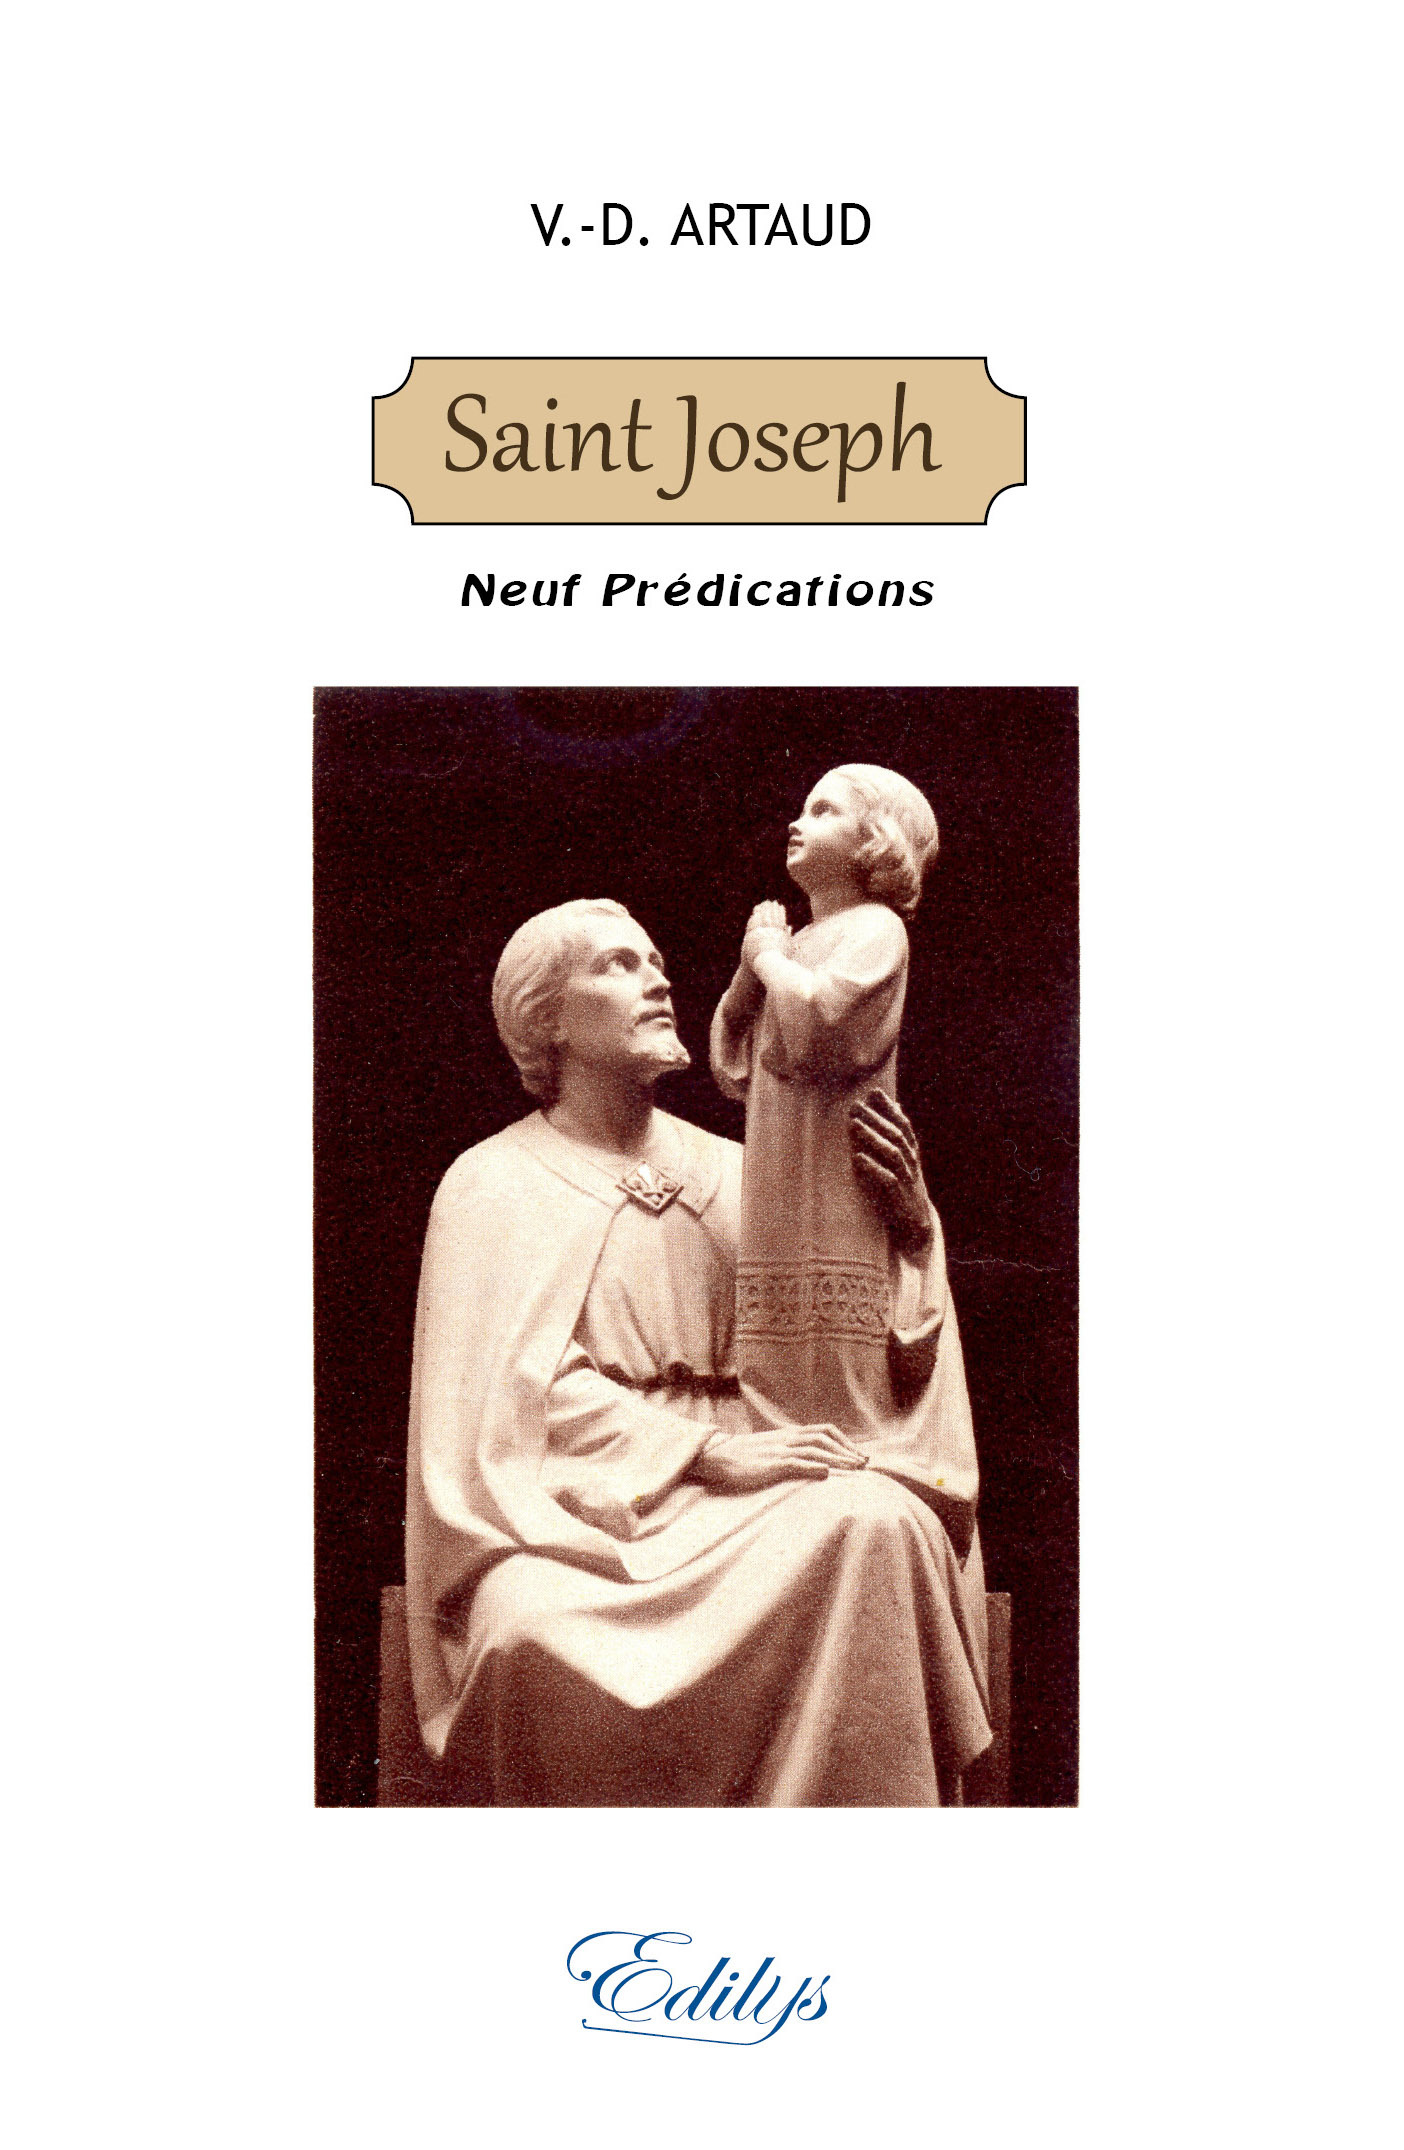 SAINT JOSEPH, NEUF PREDICATIONS